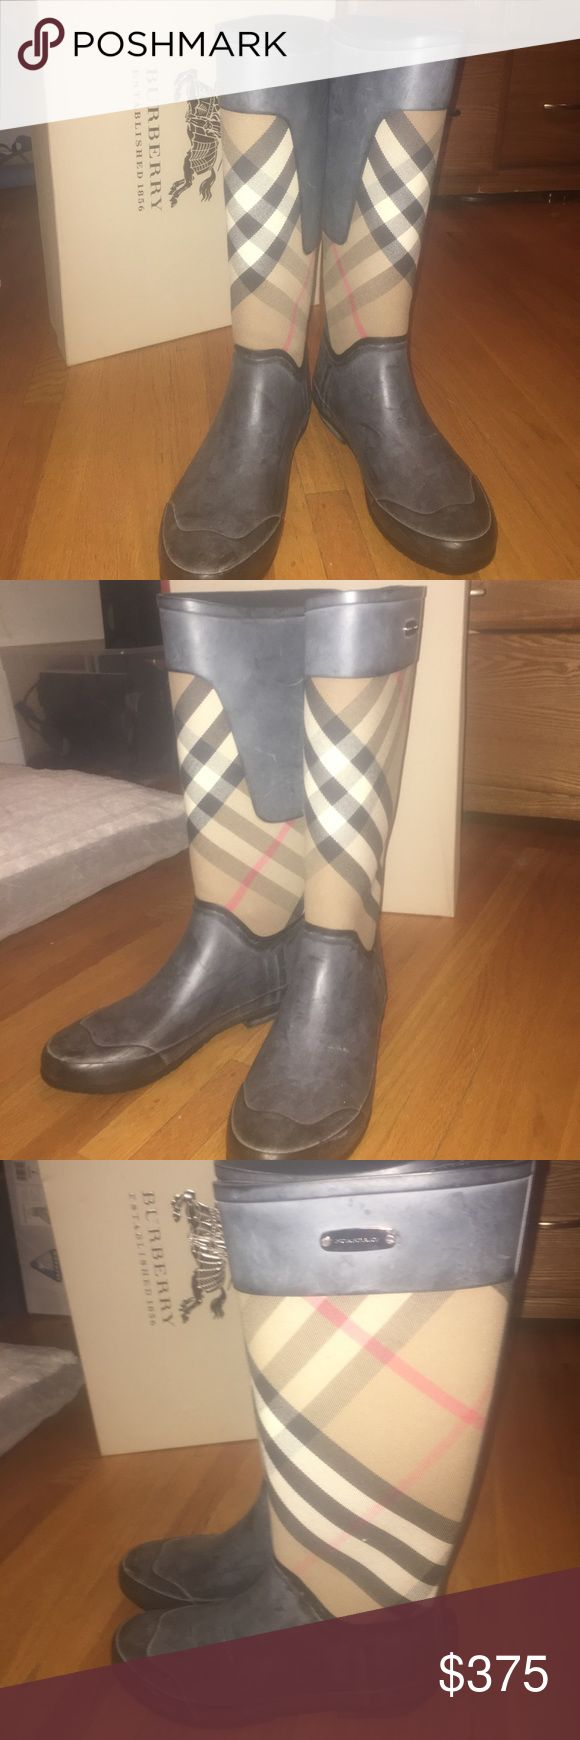 Burberry rain boots fits size 7 Burberry rain boots worn a couple times size 38 comes with box Burberry Shoes Winter & Rain Boots